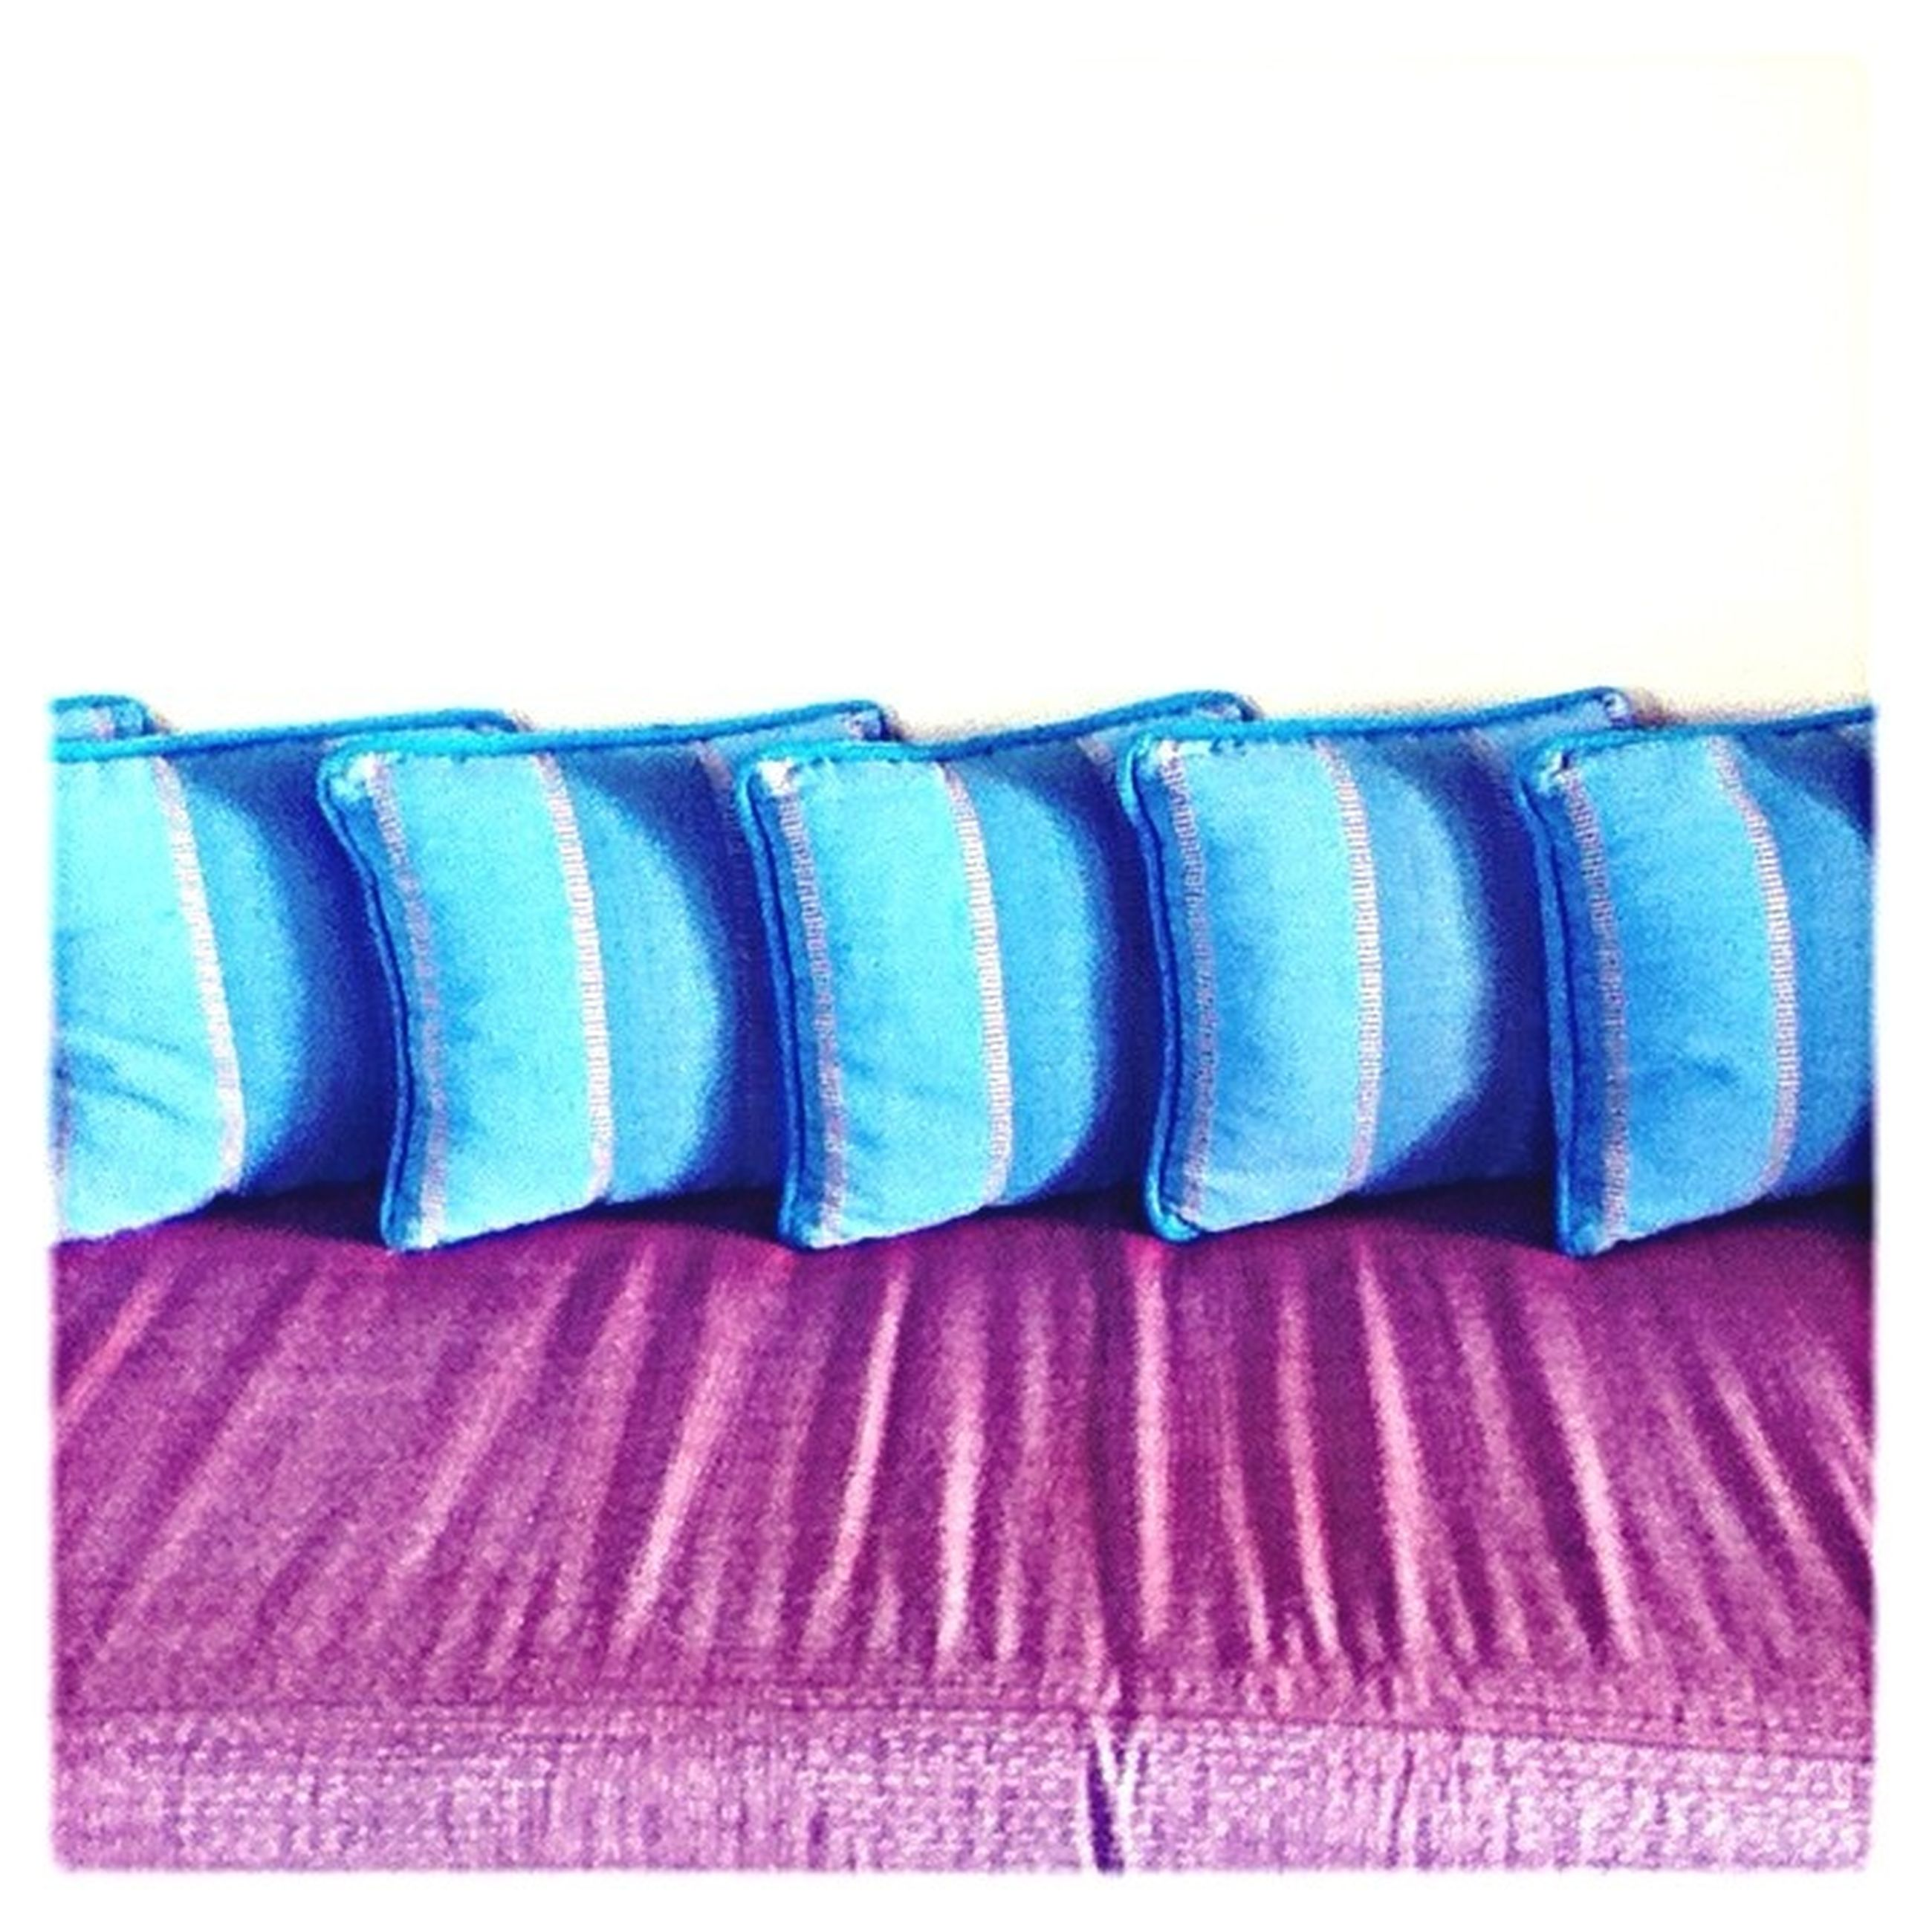 still life, multi colored, indoors, side by side, variation, arrangement, close-up, copy space, in a row, fabric, white background, textile, studio shot, pattern, choice, blue, large group of objects, high angle view, order, stack